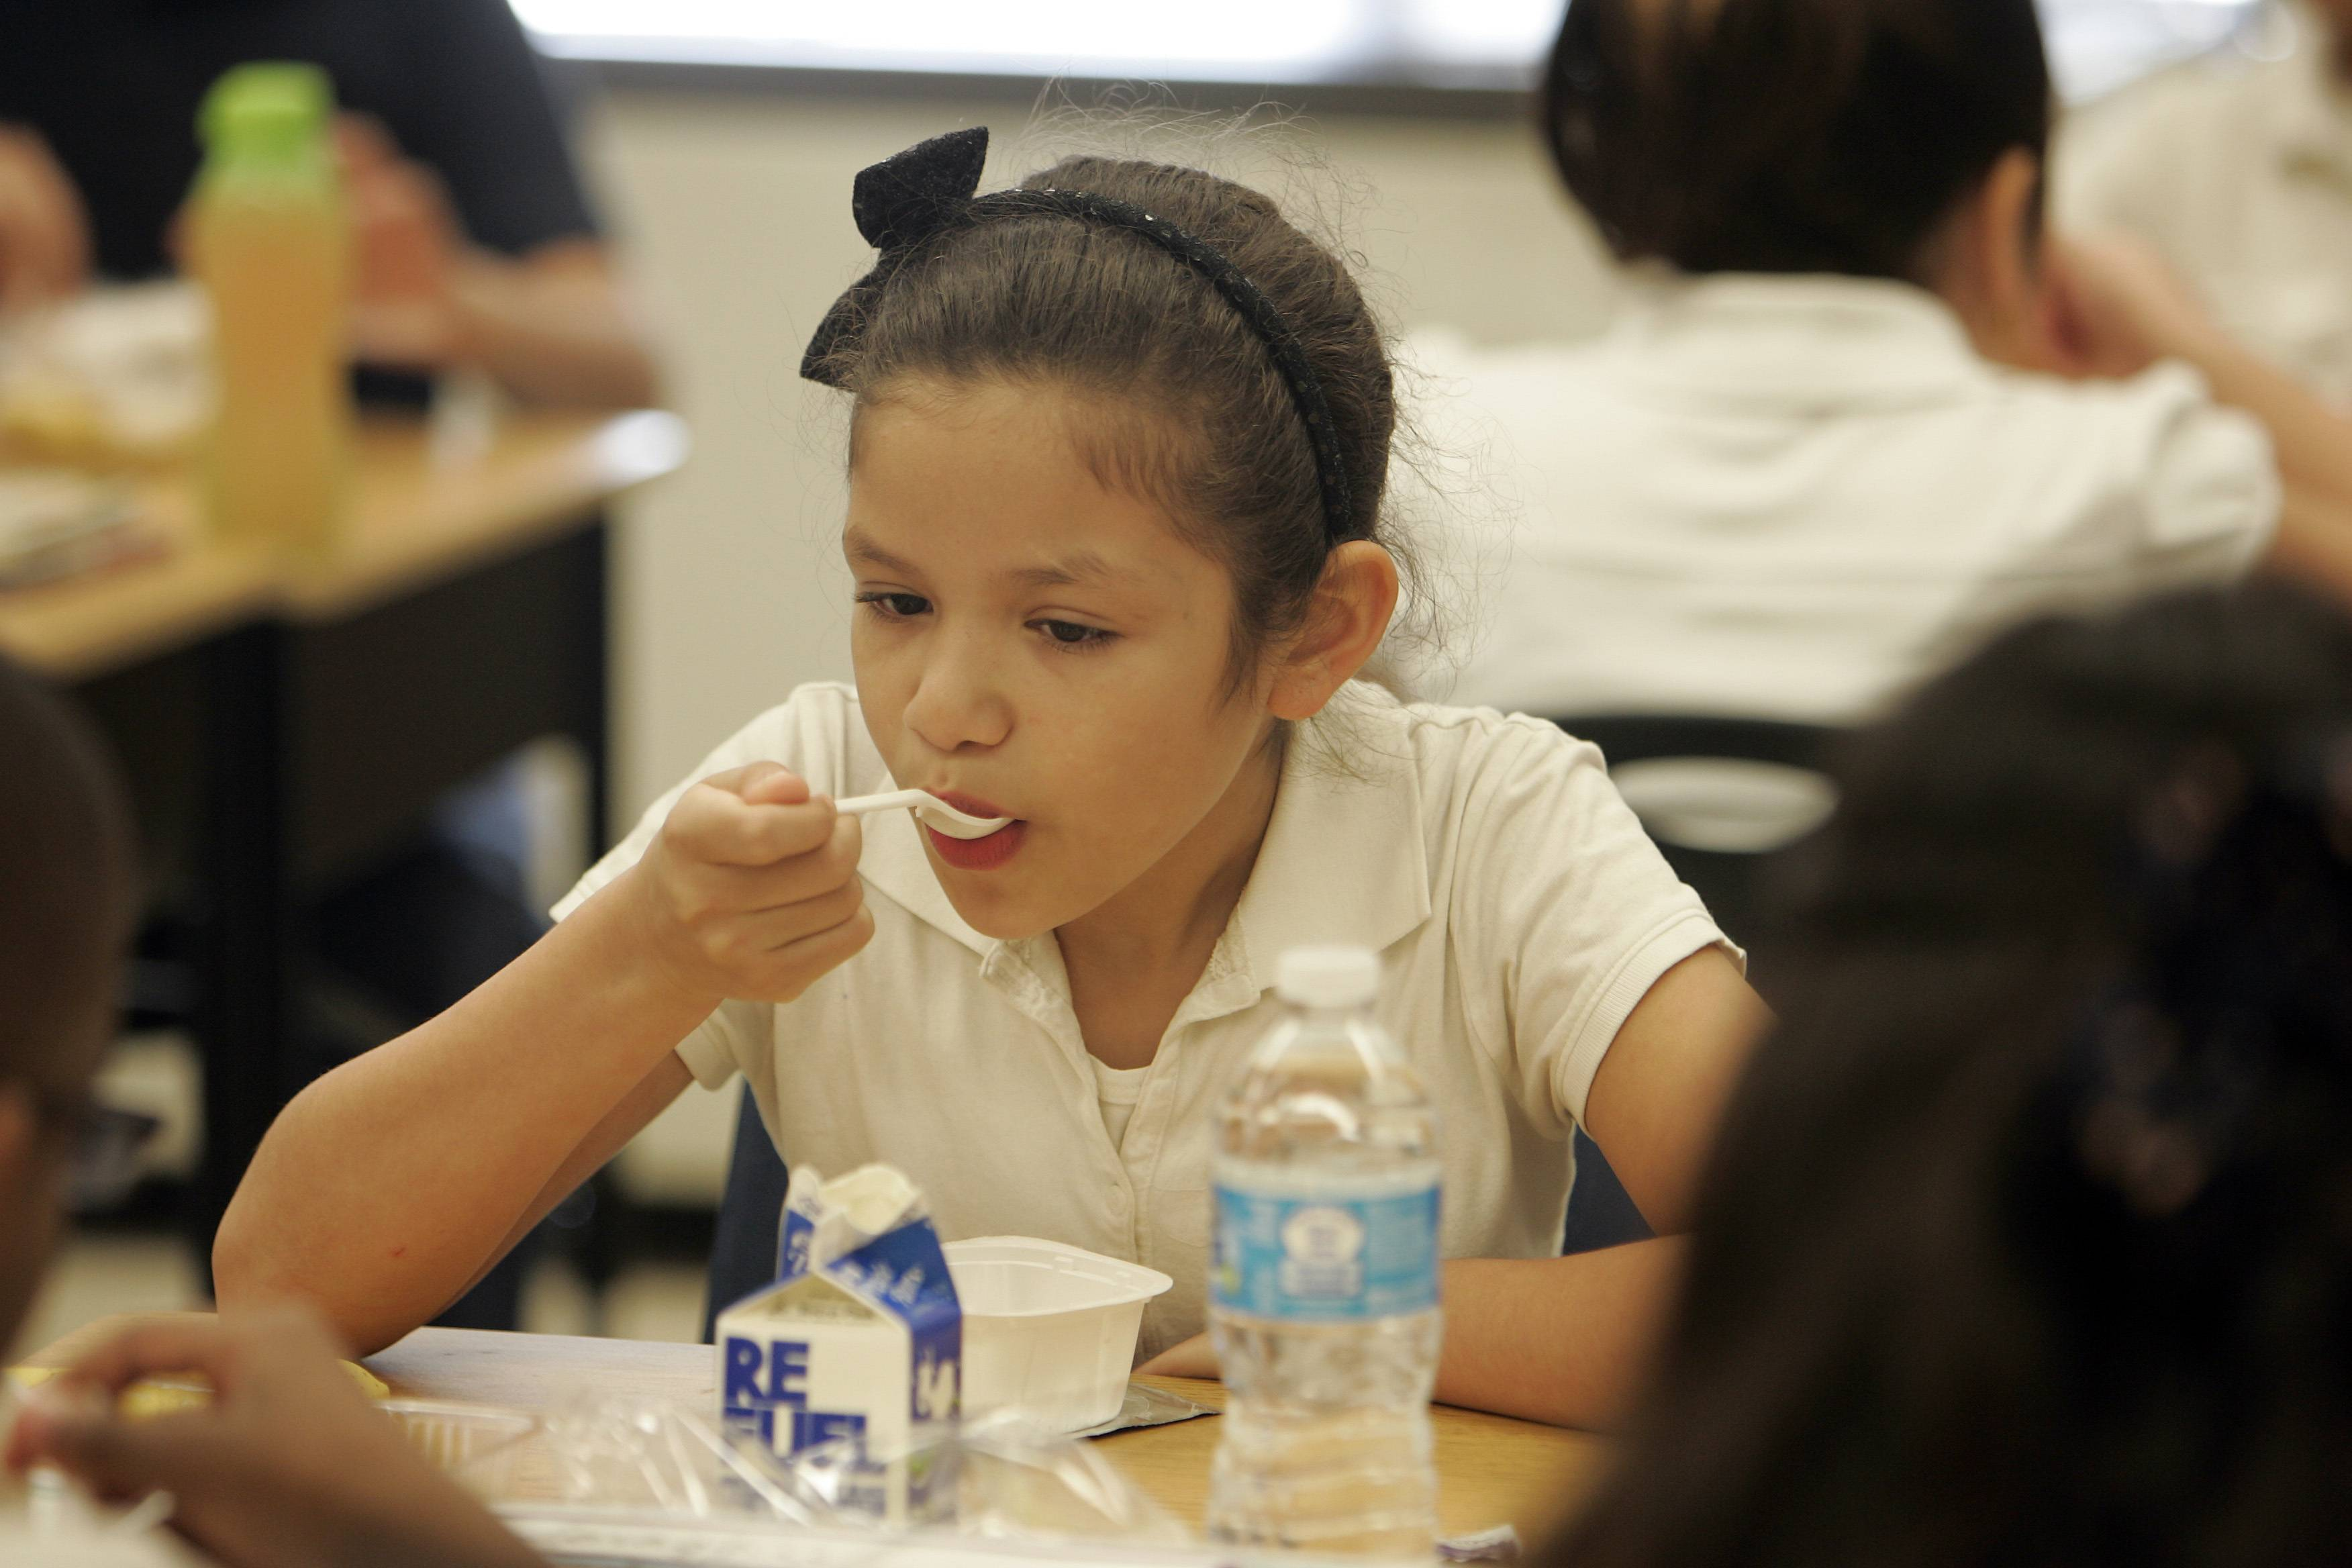 Ten-year-old Delilah Herrera, a fourth-grade student at Harriet Gifford Elementary School in Elgin enjoys breakfast as part of the Breakfast in Classroom program that is available at 10 U46 schools this year. Elgin Area School District U-46 teachers are trying to revive a special program that fed students a free breakfast in their classrooms.